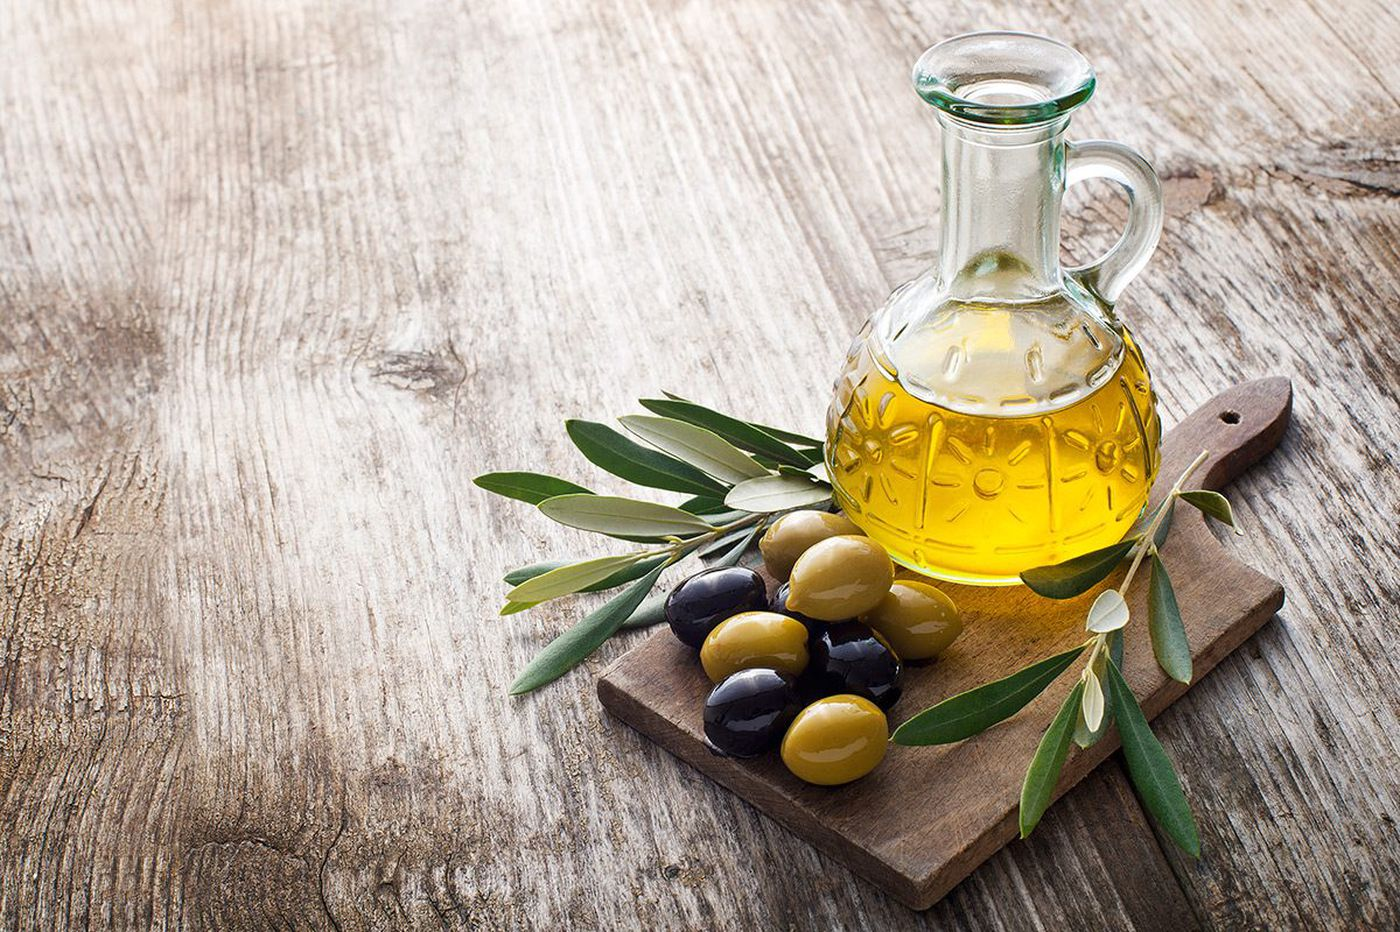 Temple finds olive oil is good for the brain — in mice